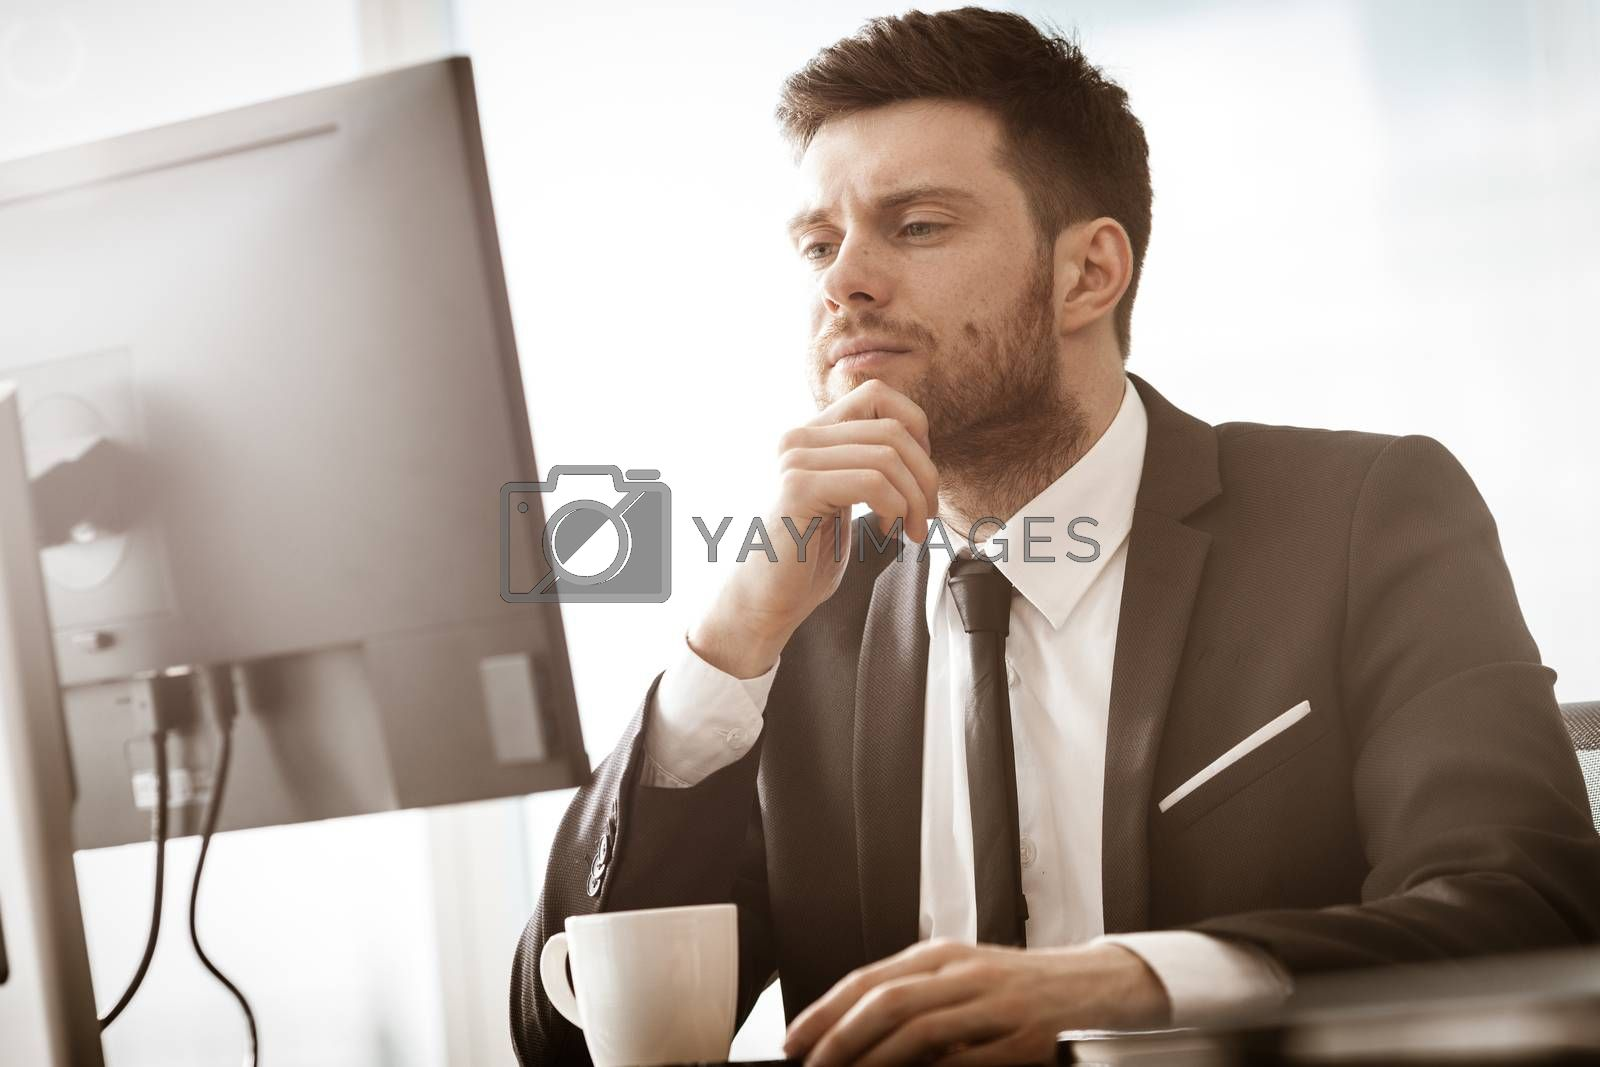 Business crisis concept. Young businessman sitting at the office table busy talking on a cell phone resolving a very serious work problem. Man in suit indoors on glass window background by mtoome